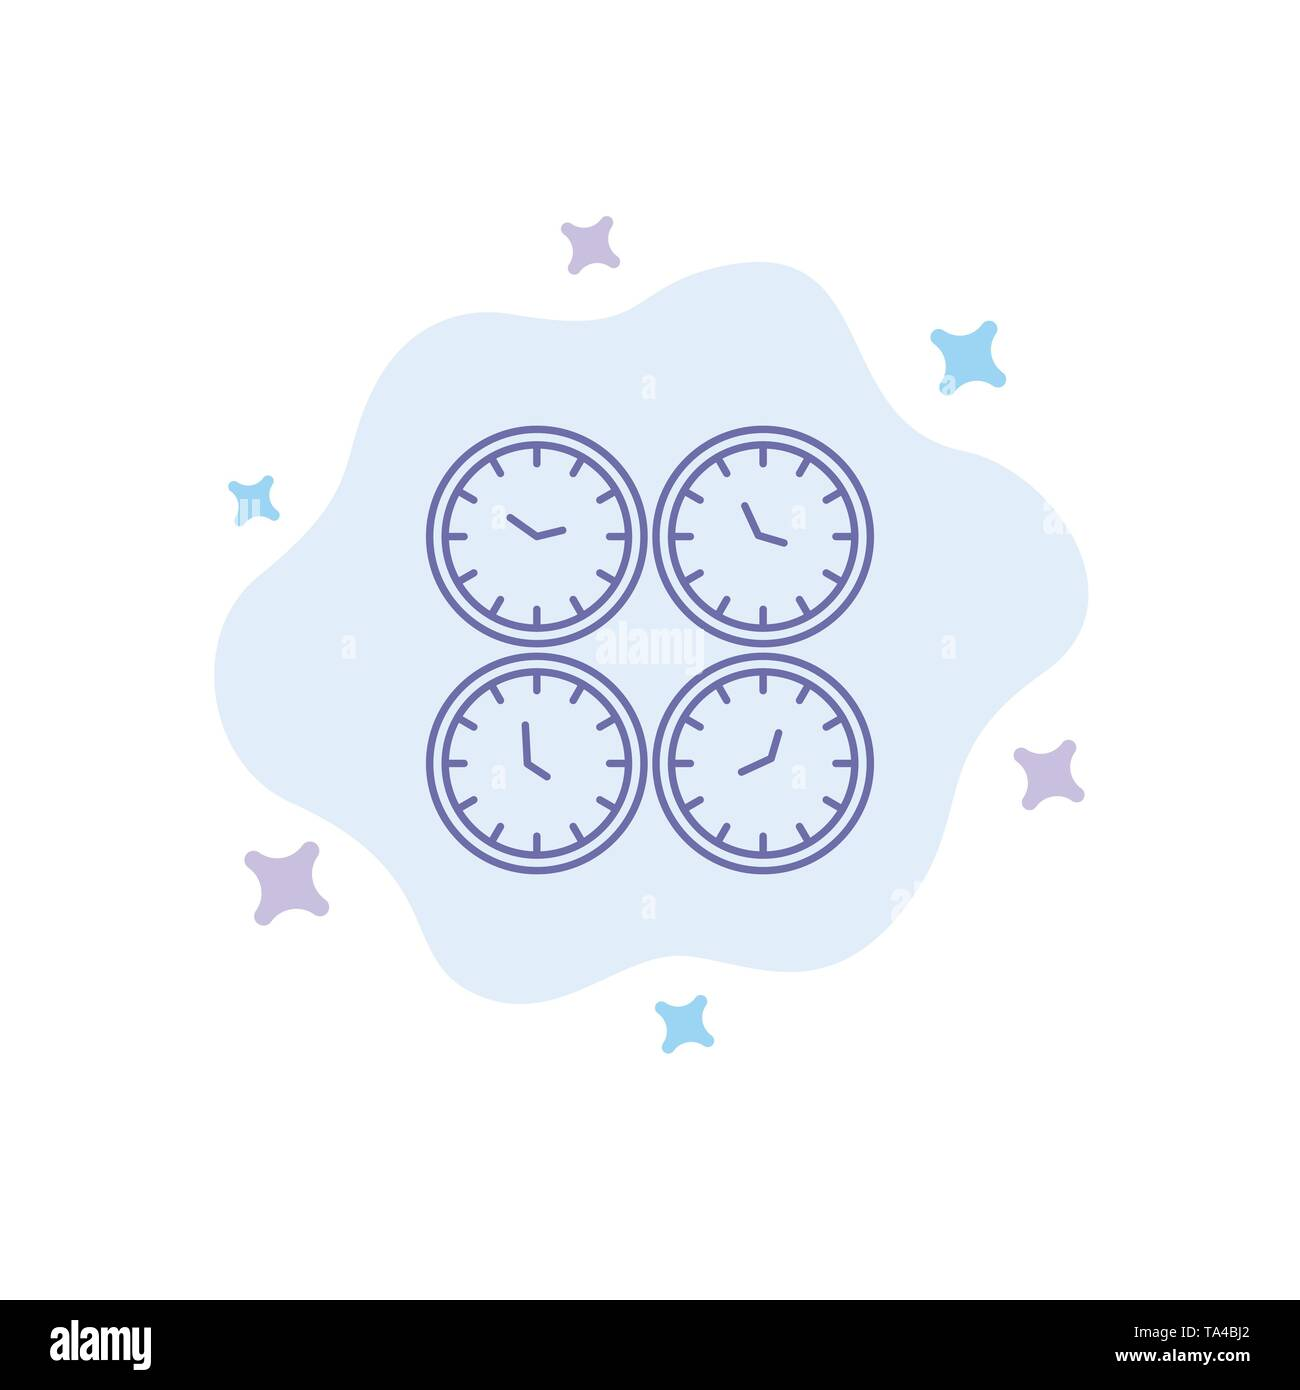 Clock, Business, Clocks, Office Clocks, Time Zone, Wall Clocks, World Time Blue Icon on Abstract Cloud Background - Stock Image